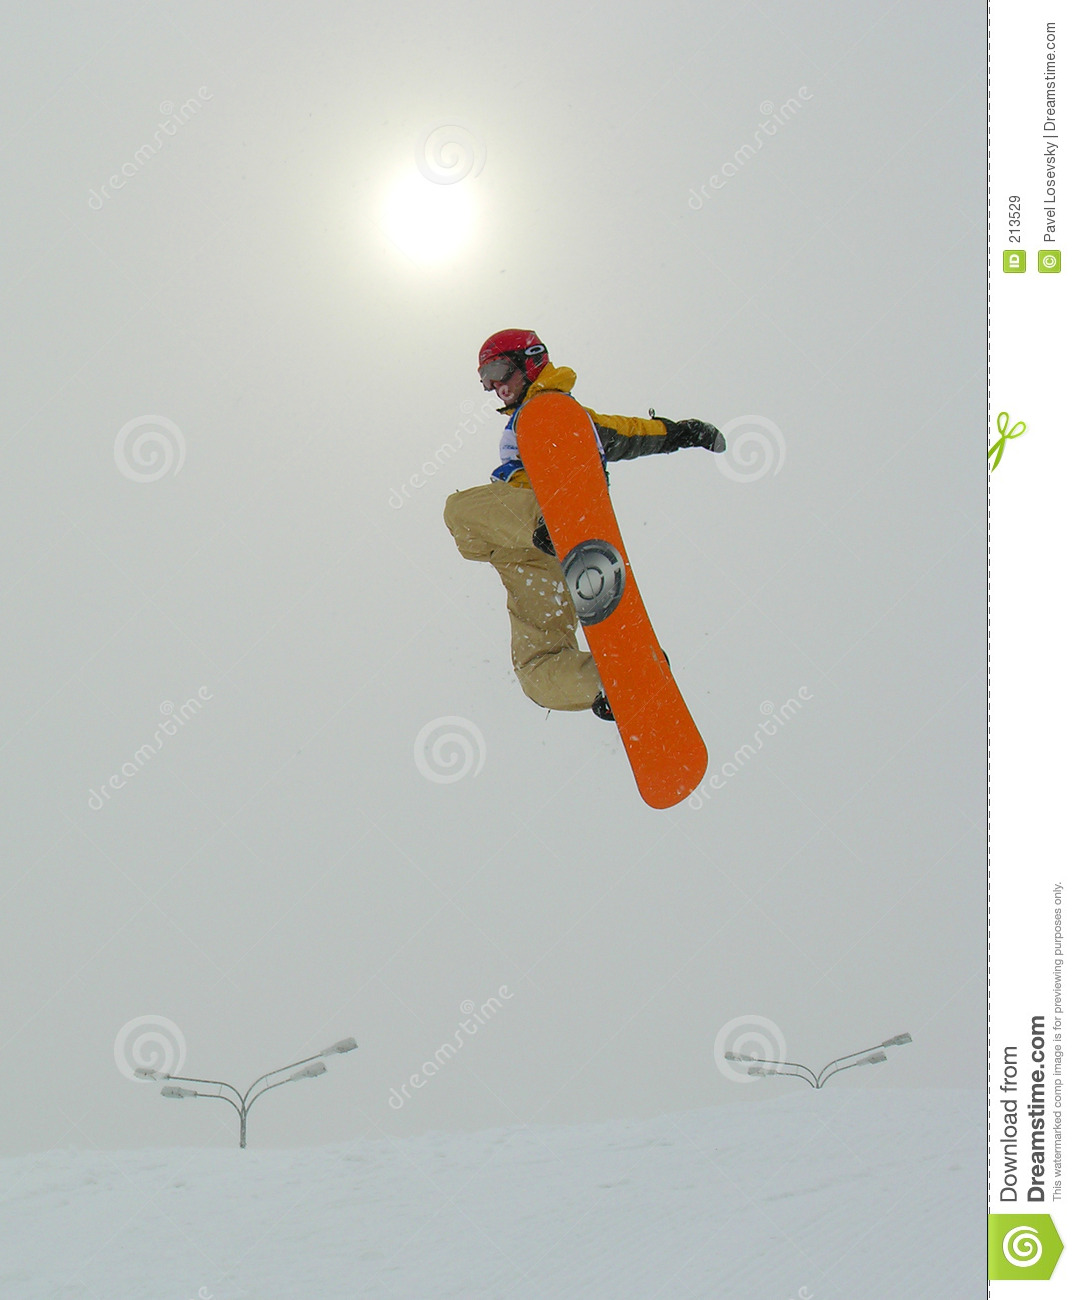 Snowboarder Jumping and sun